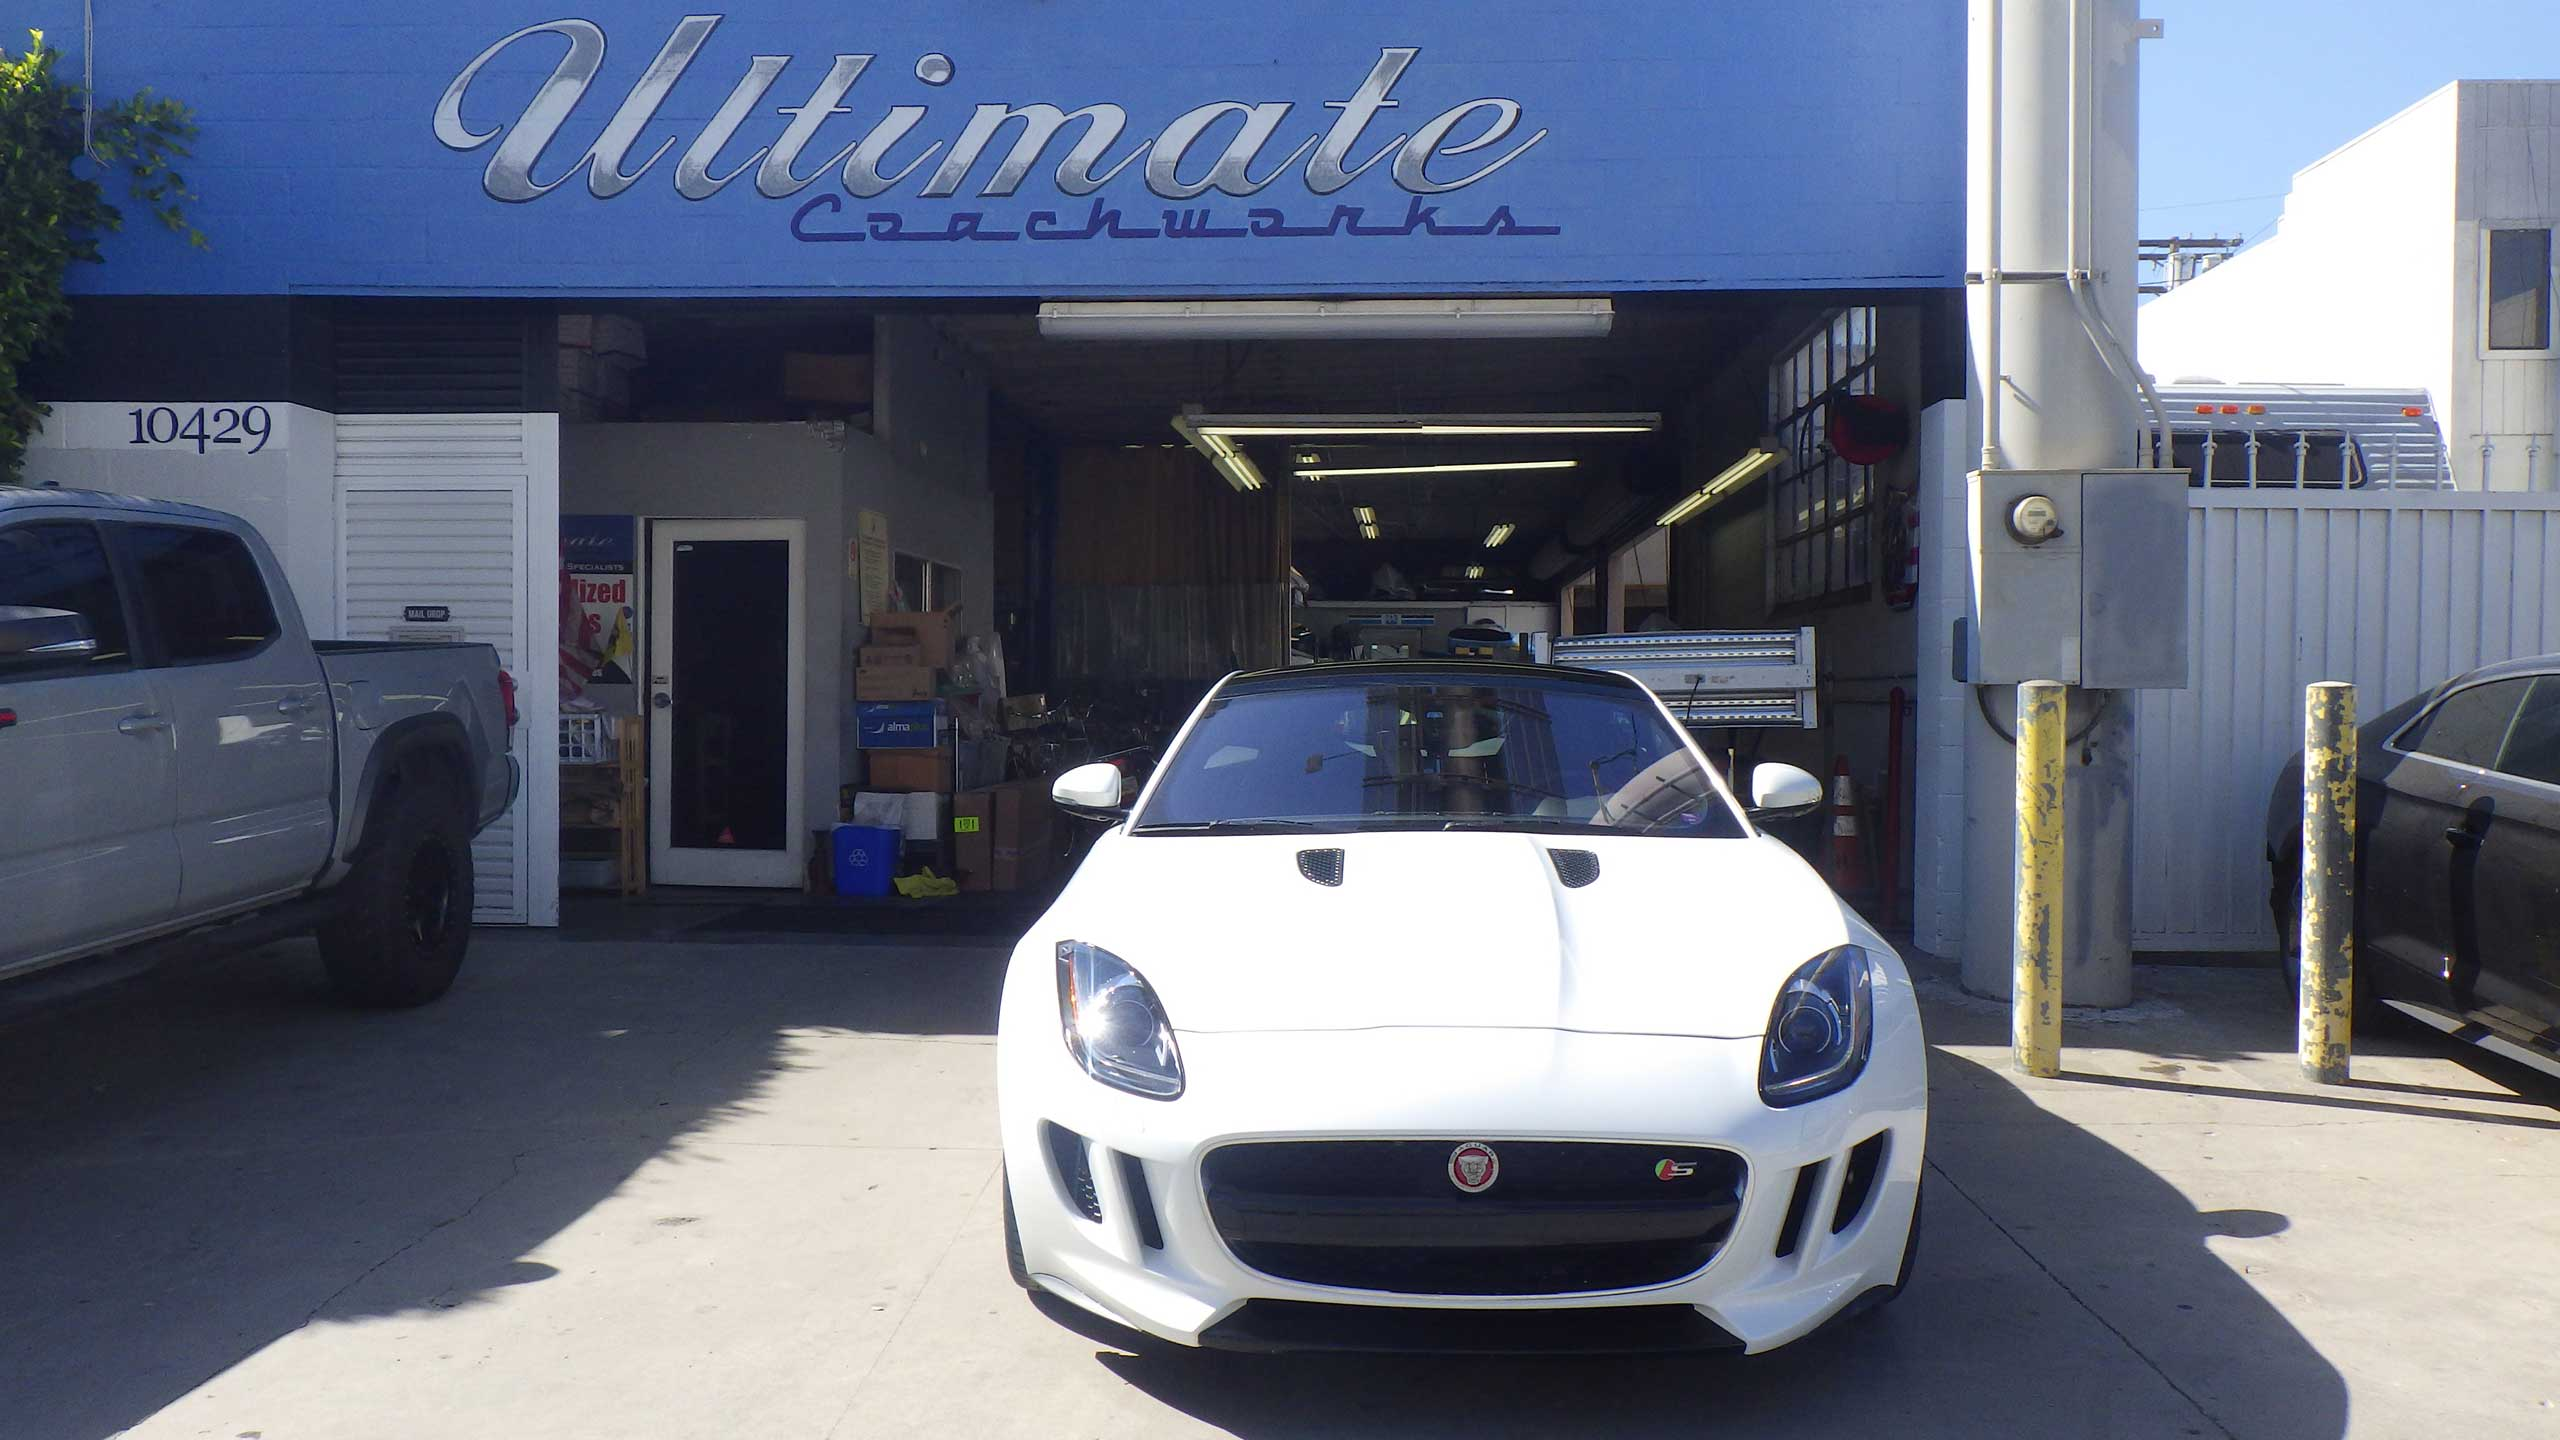 UC_2_car_front_storefront_2560x1440-001